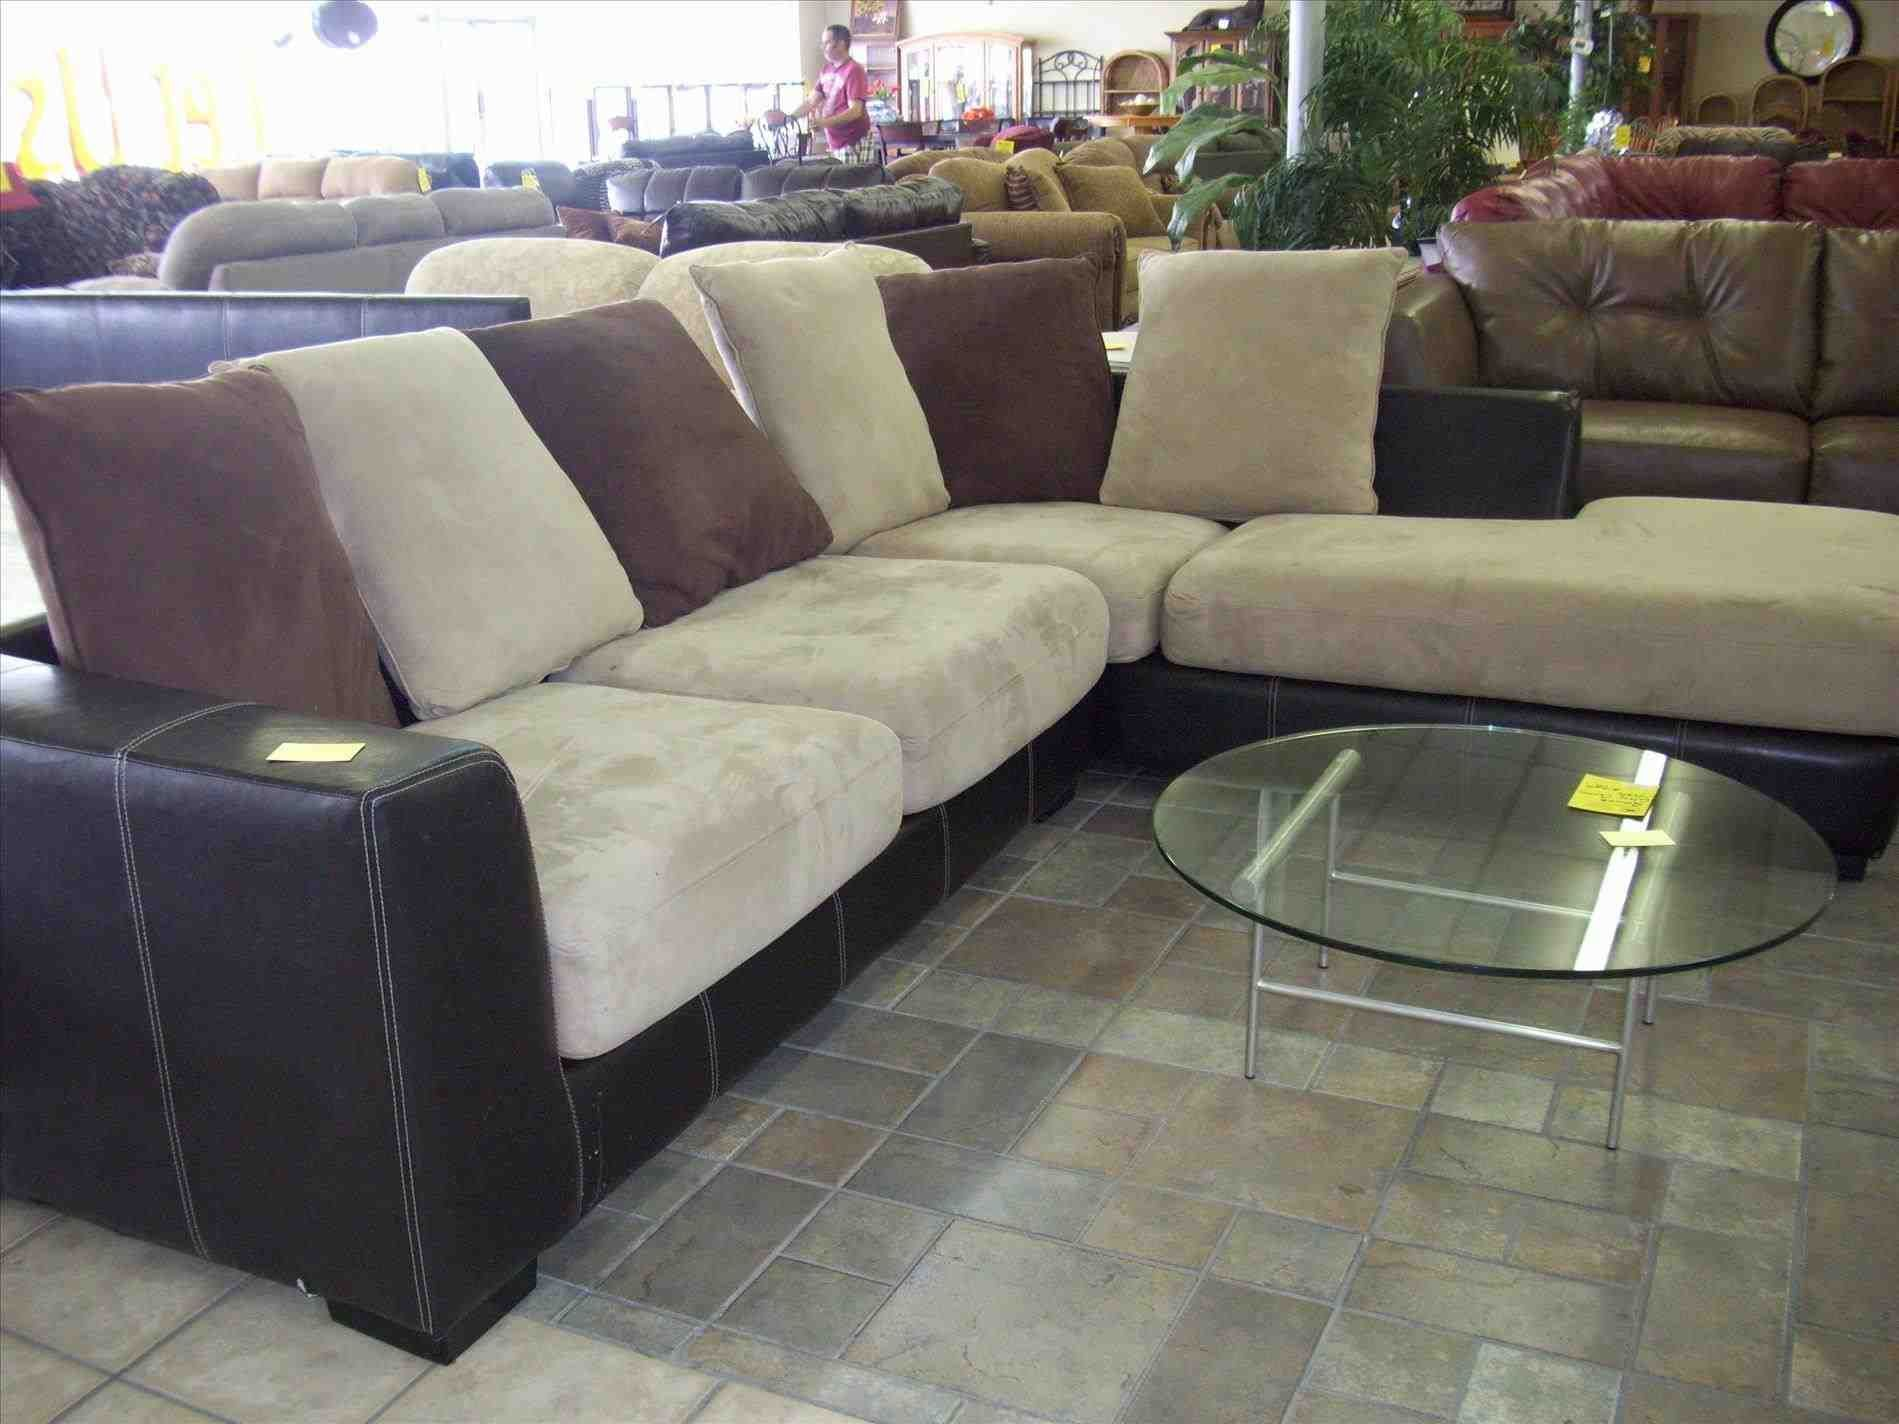 Sectionals Nj Cream Sectional With Marble Coffee Table Furniture And Home Decor Once Again Consignment Madison Montville Signature